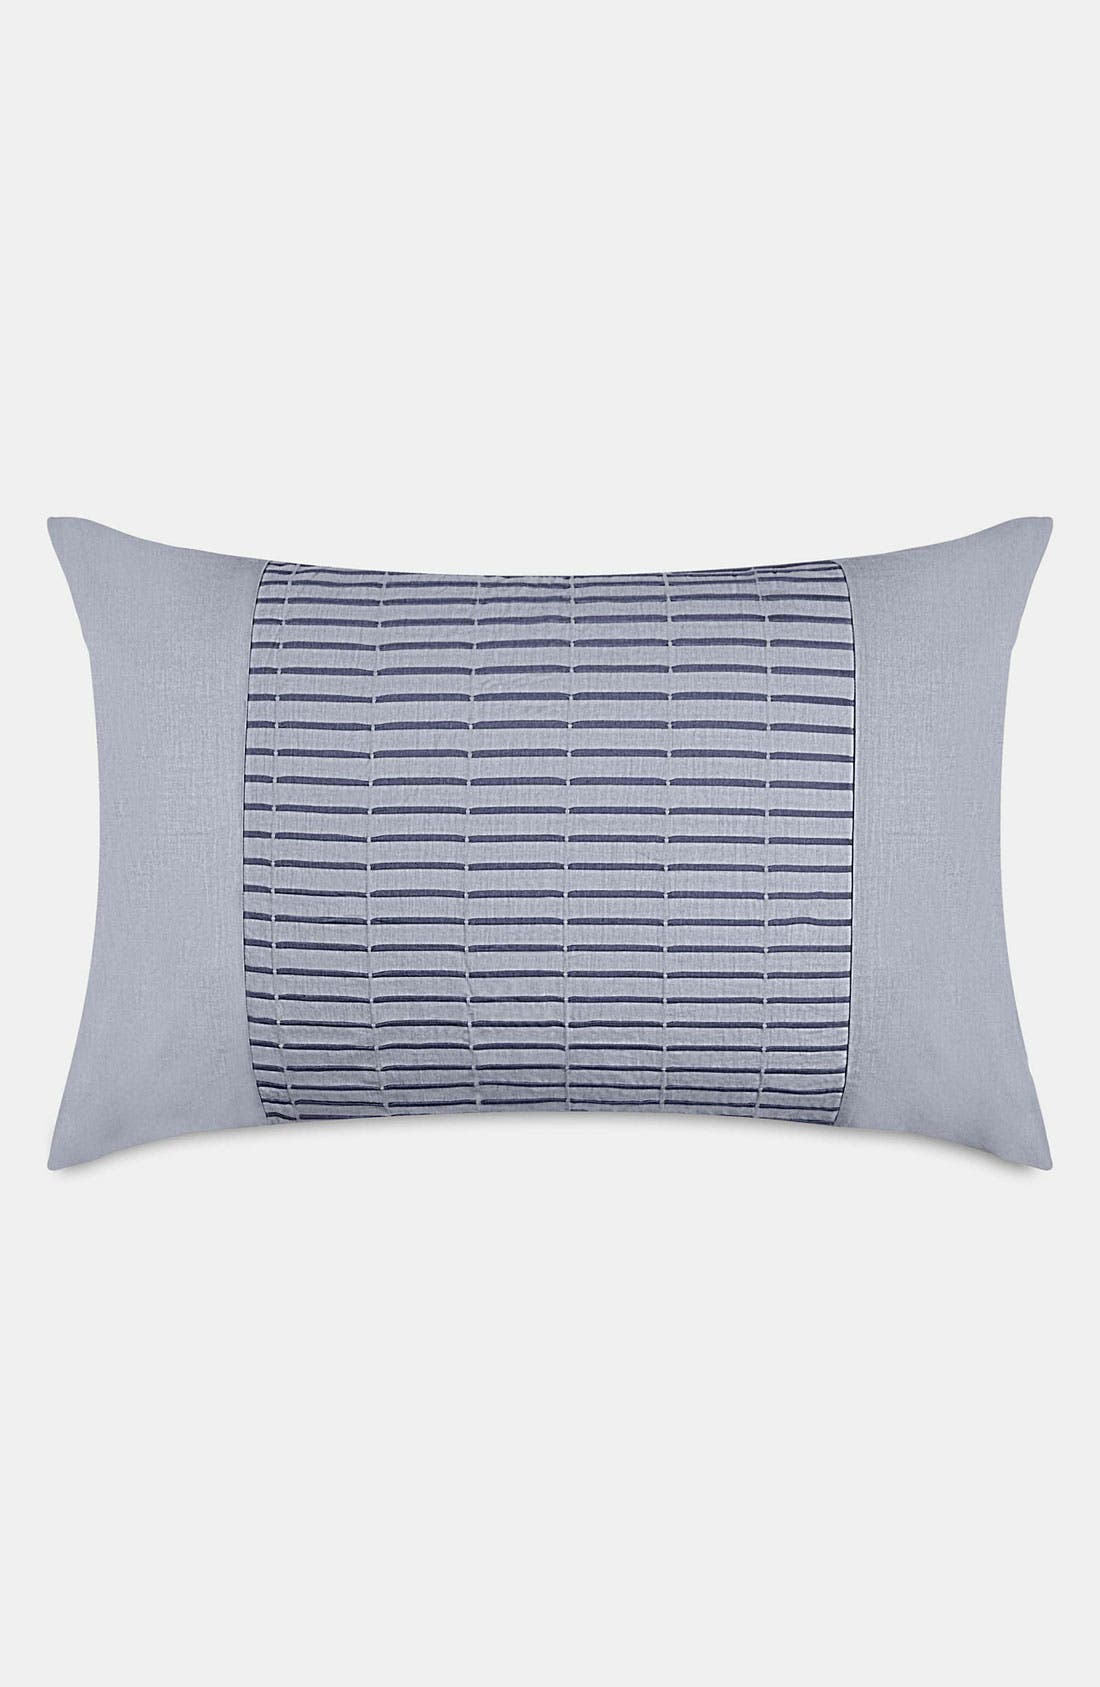 Alternate Image 1 Selected - DKNY 'City Rhythm' Pillow Sham